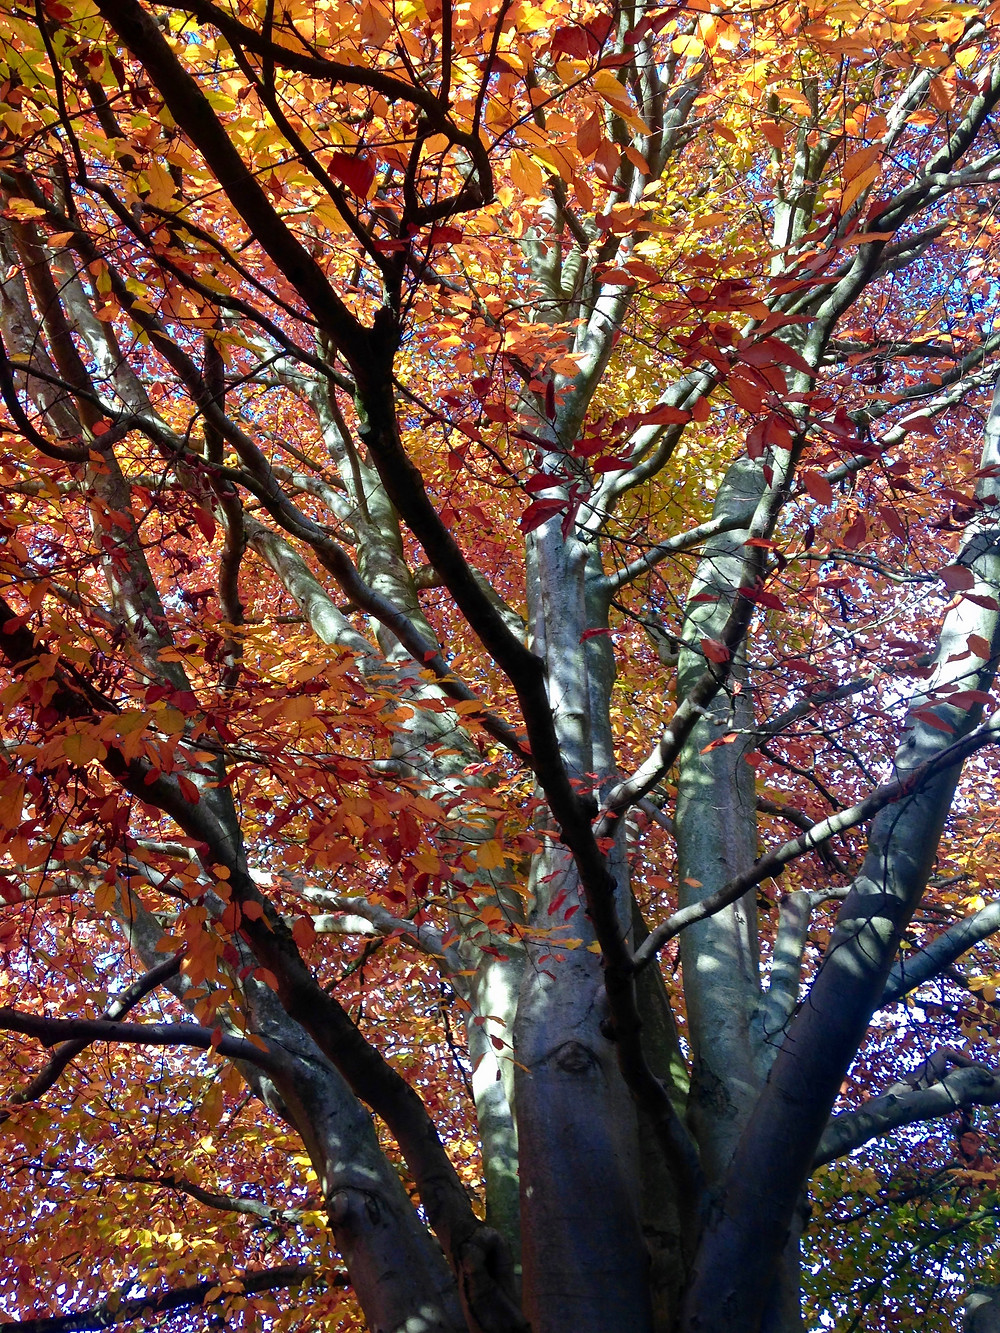 Beech Tree canopy in Autumn by Amanda Vesty